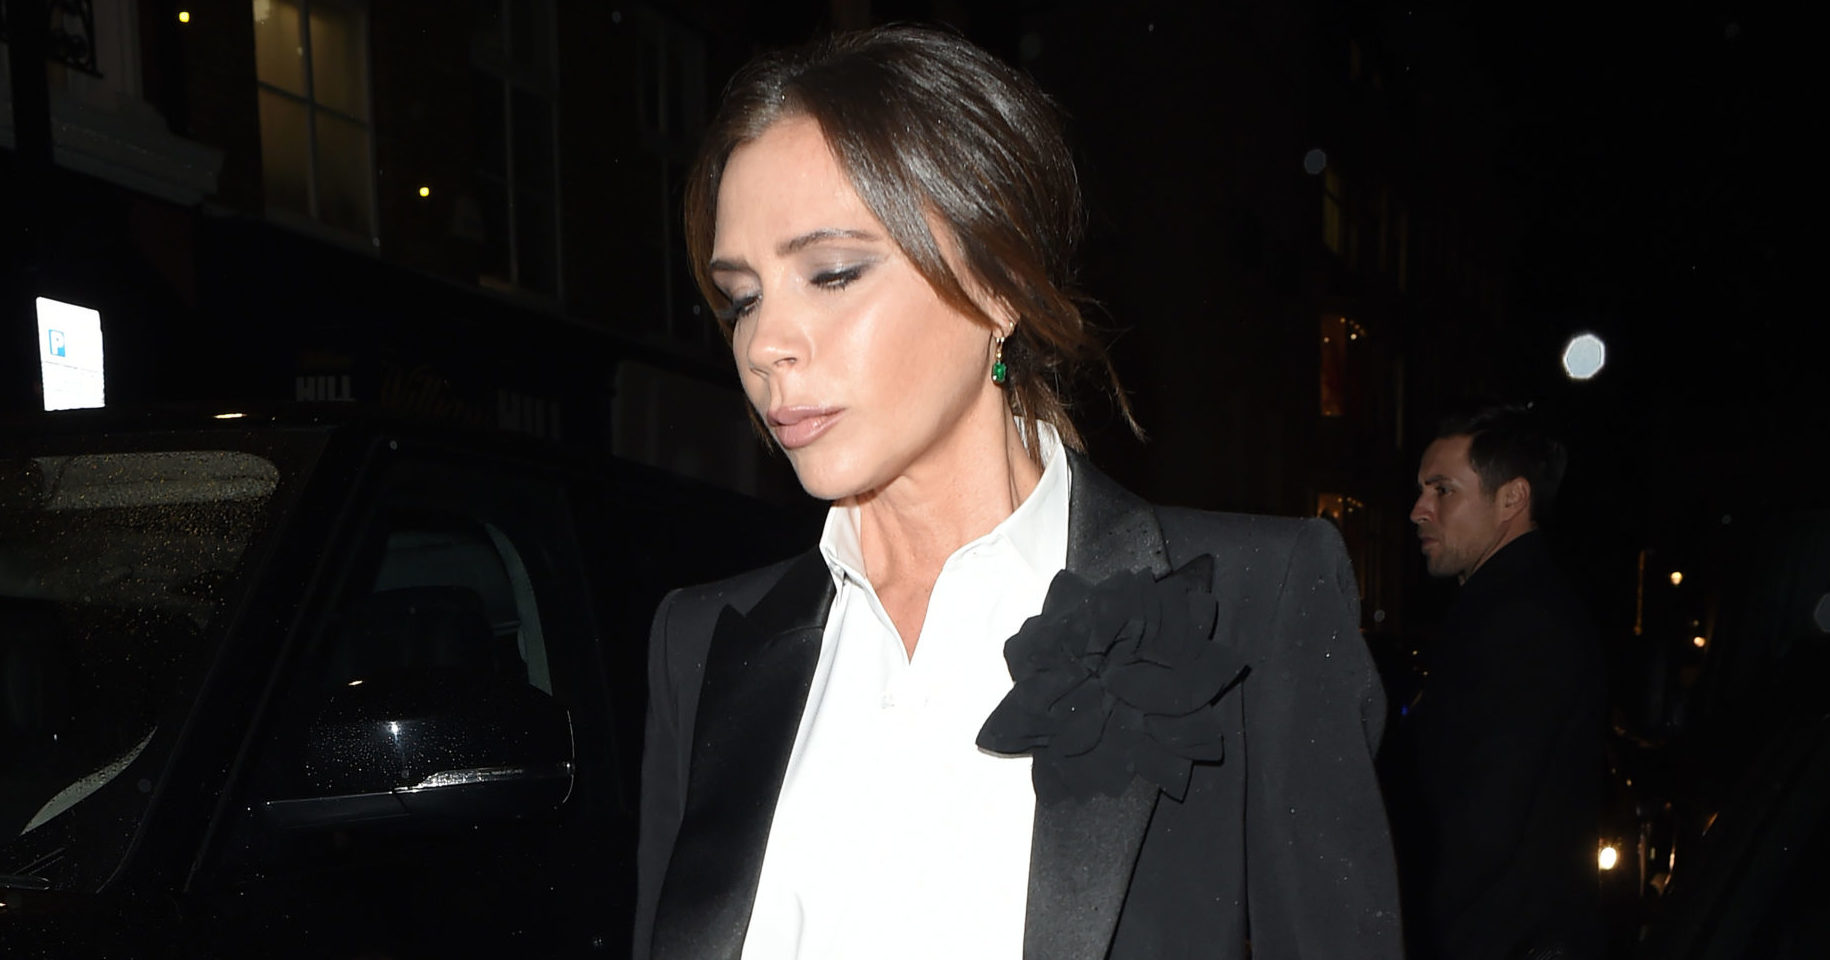 Victoria Beckham branded 'shameless' as she flogs new clothes after furloughing staff